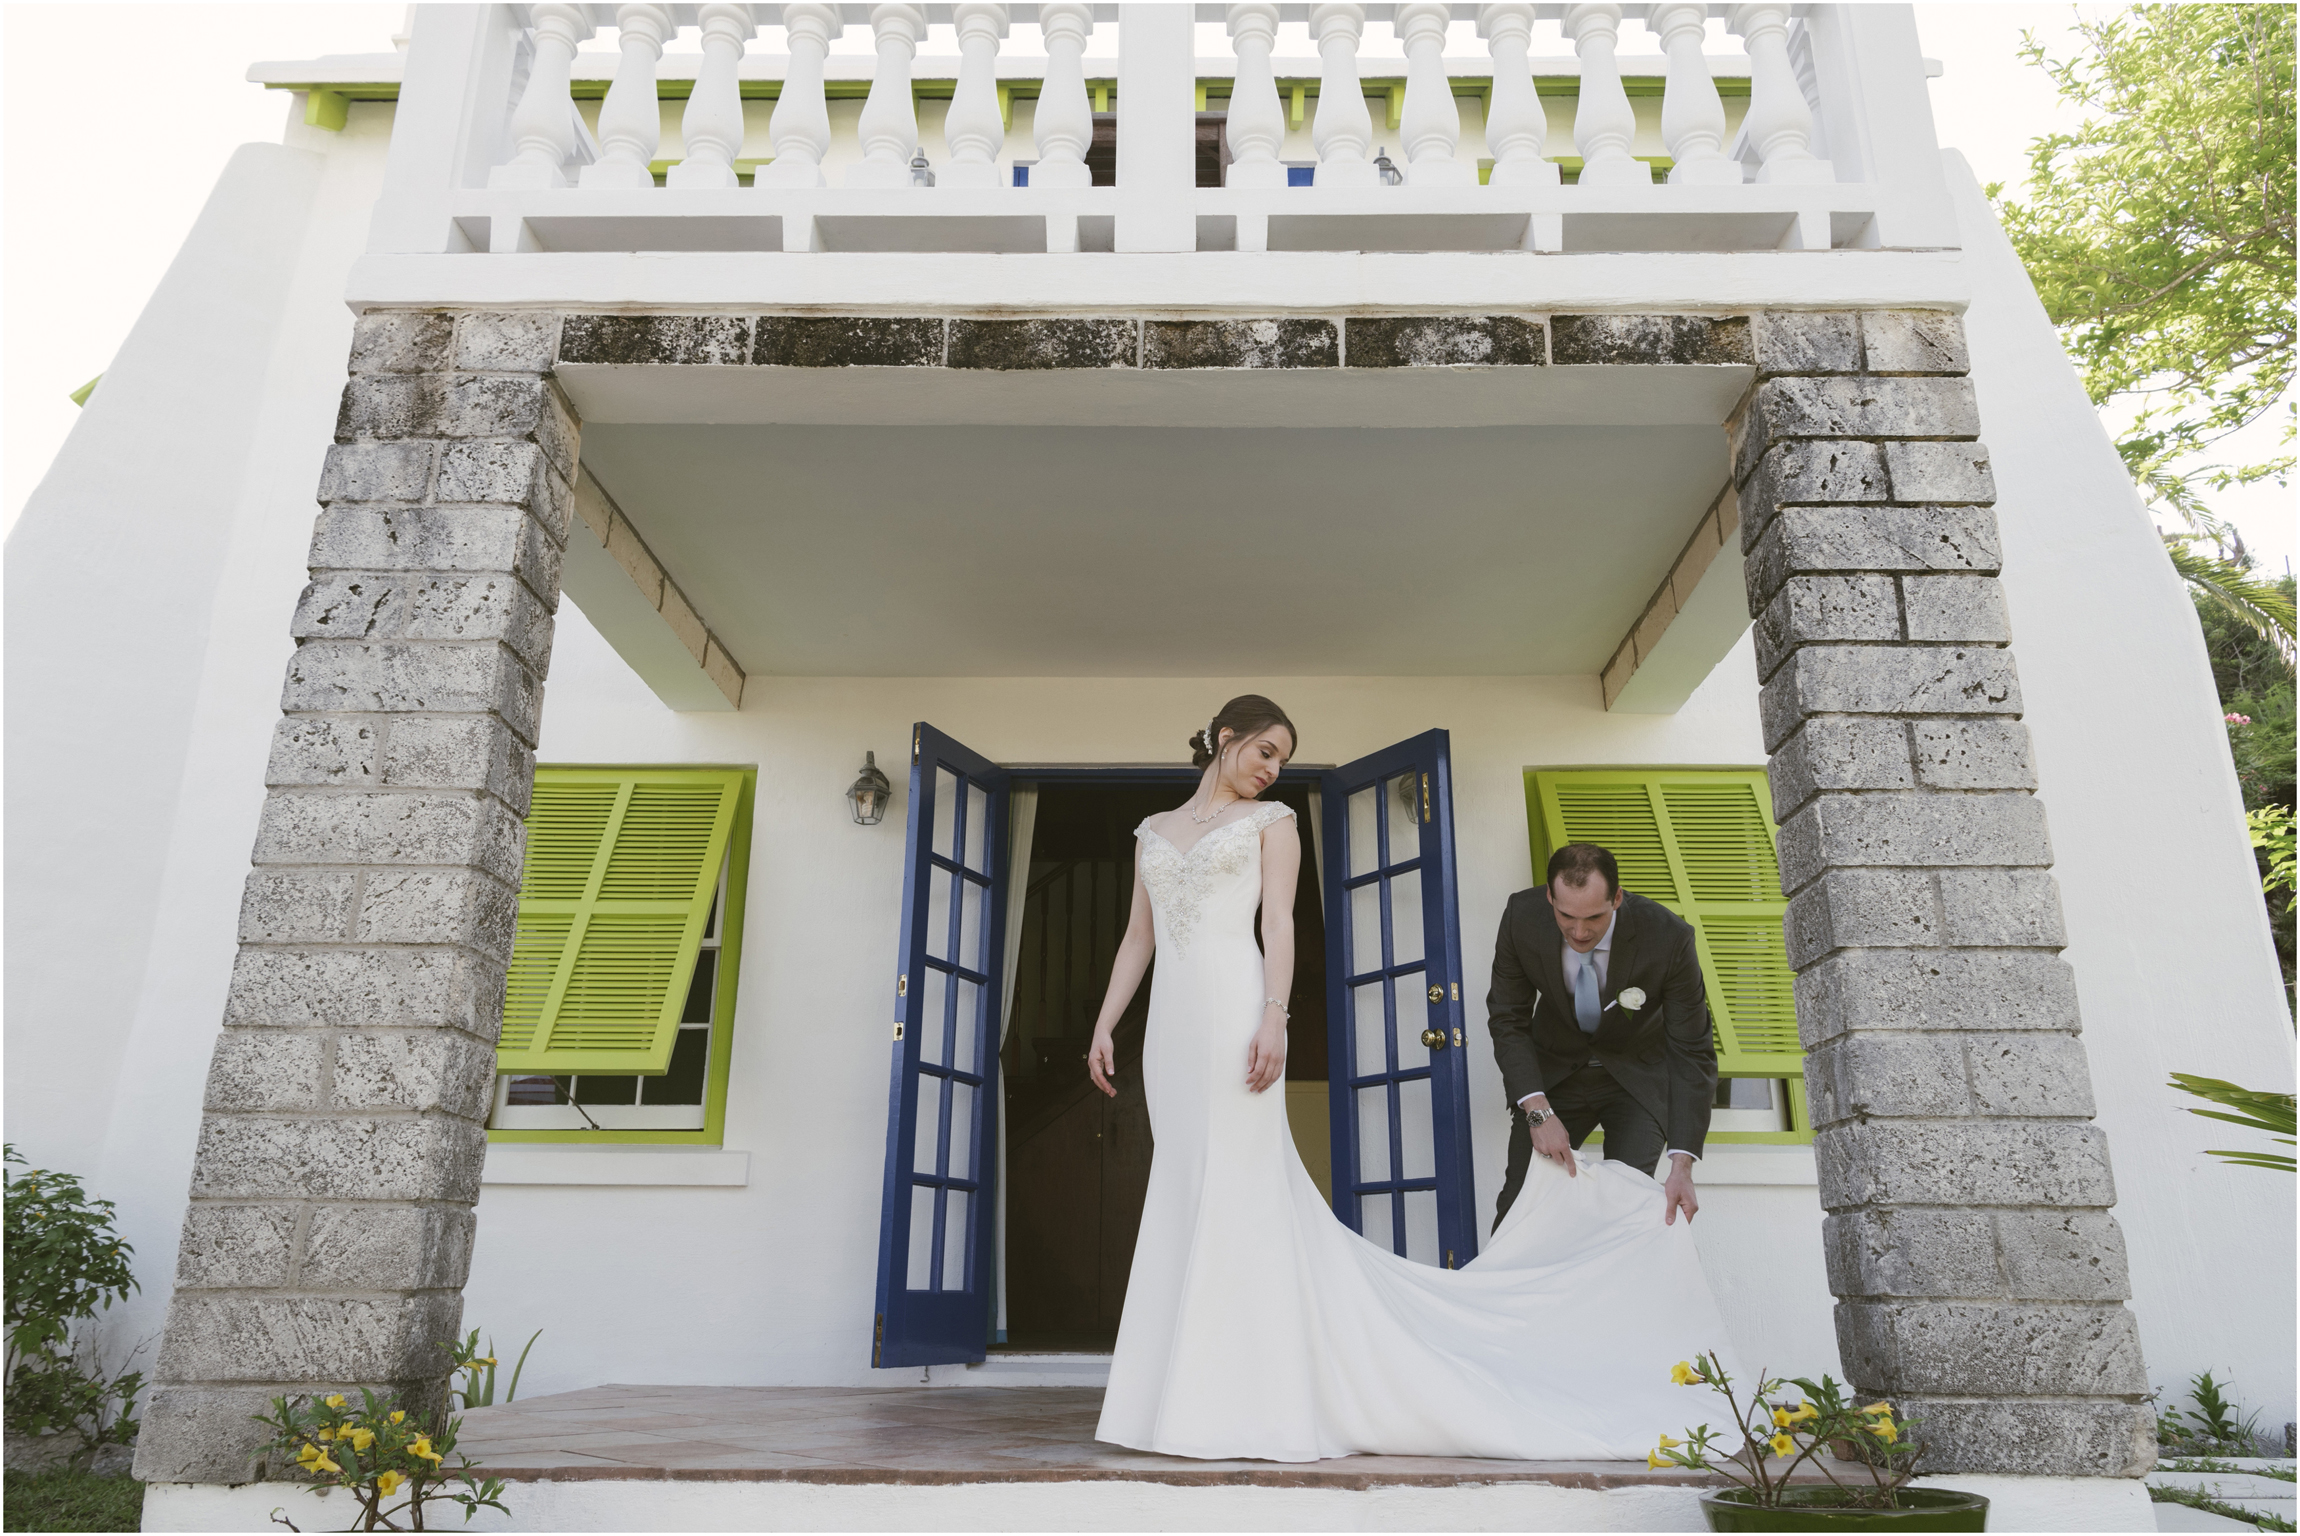 ©FianderFoto_Caribbean_Wedding_Photographer_The Reefs_Bermuda_Lauren_Erik_043.jpg